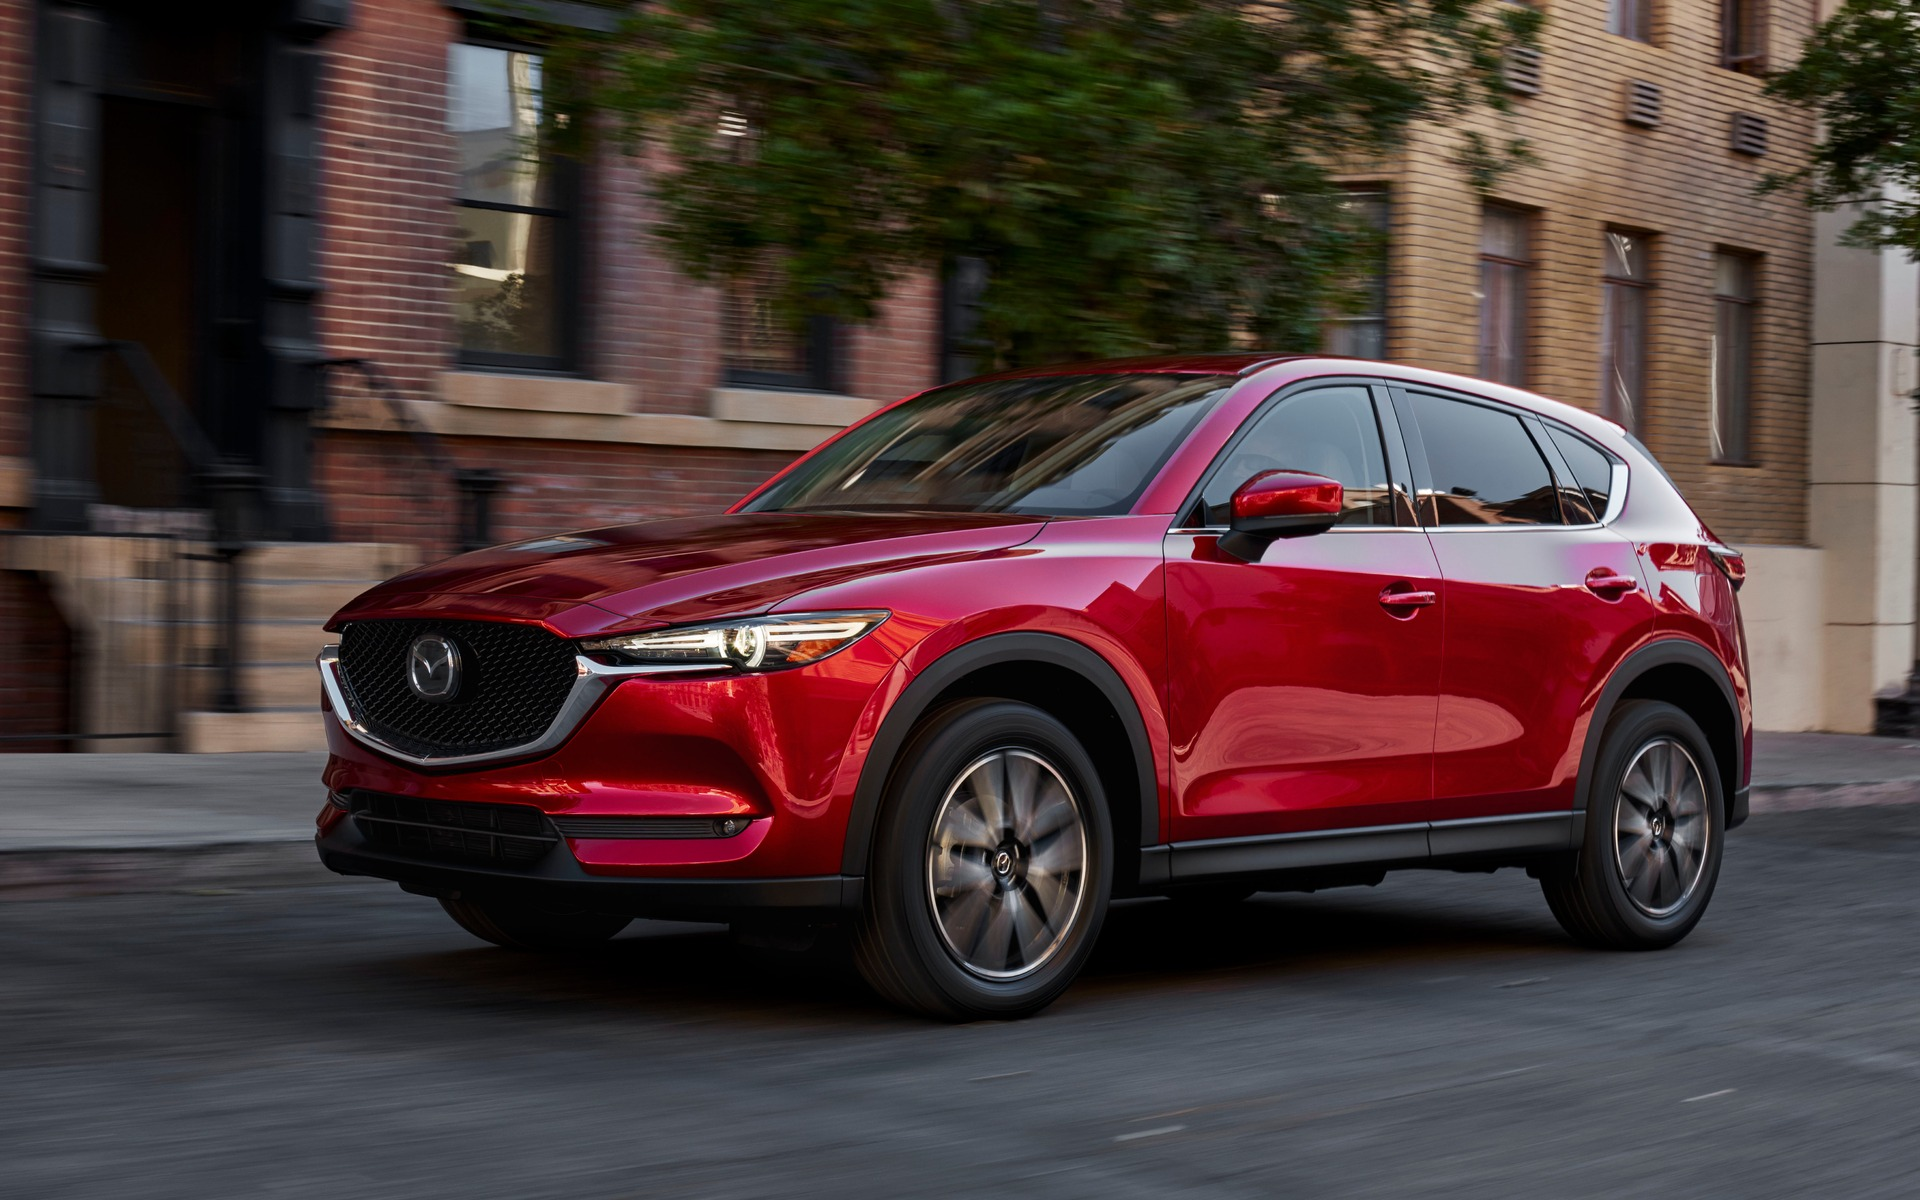 2018 Mazda CX-5: Redesign, Styling, Changes, Price >> 2018 Mazda Cx 5 More Efficient Better Equipped The Car Guide